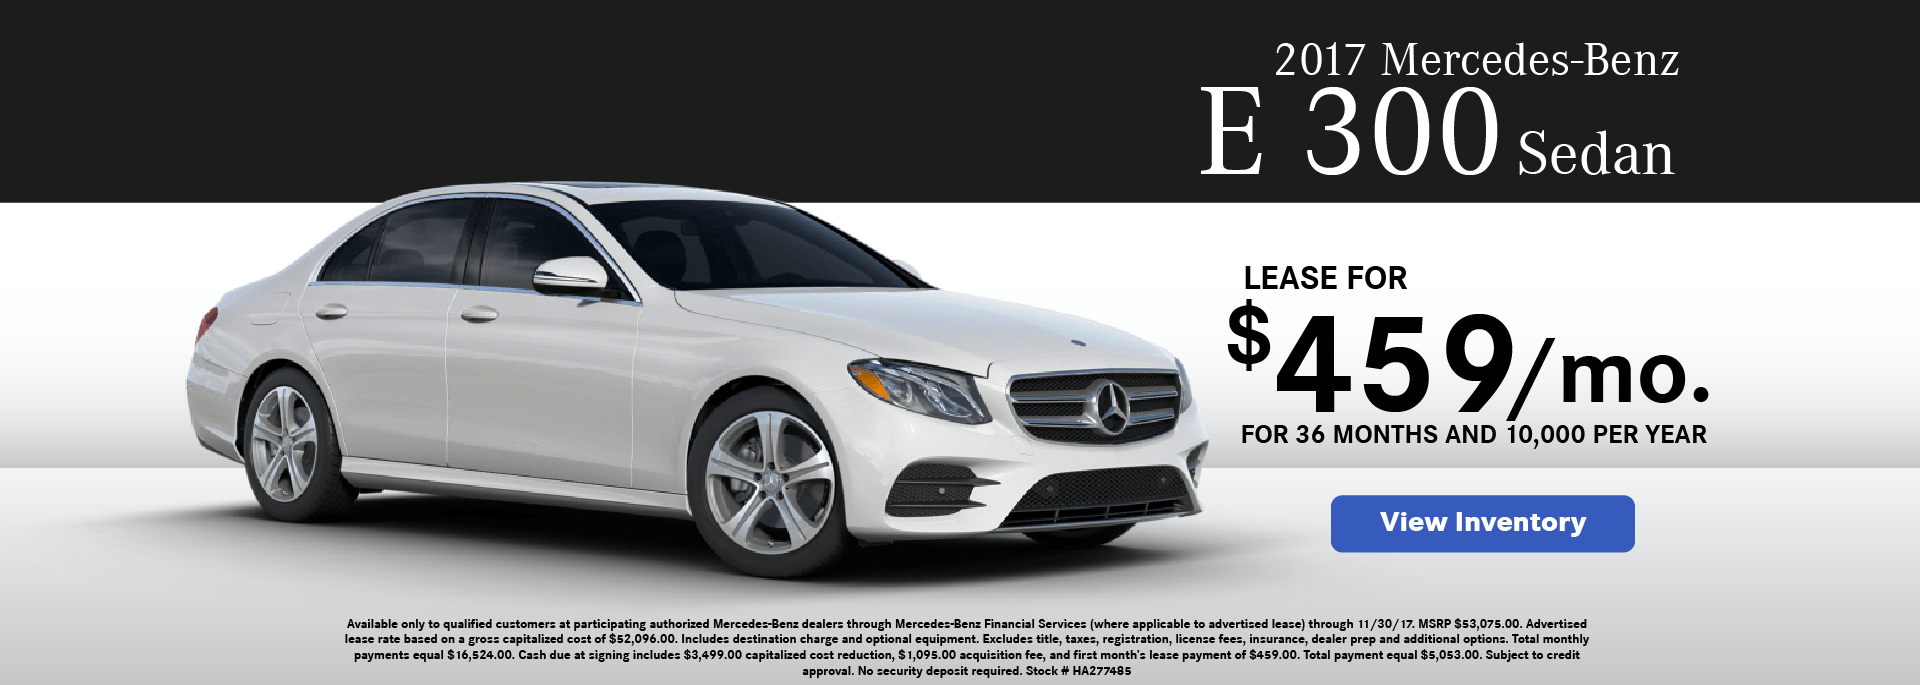 mercedes benz dealership cutler bay fl used cars